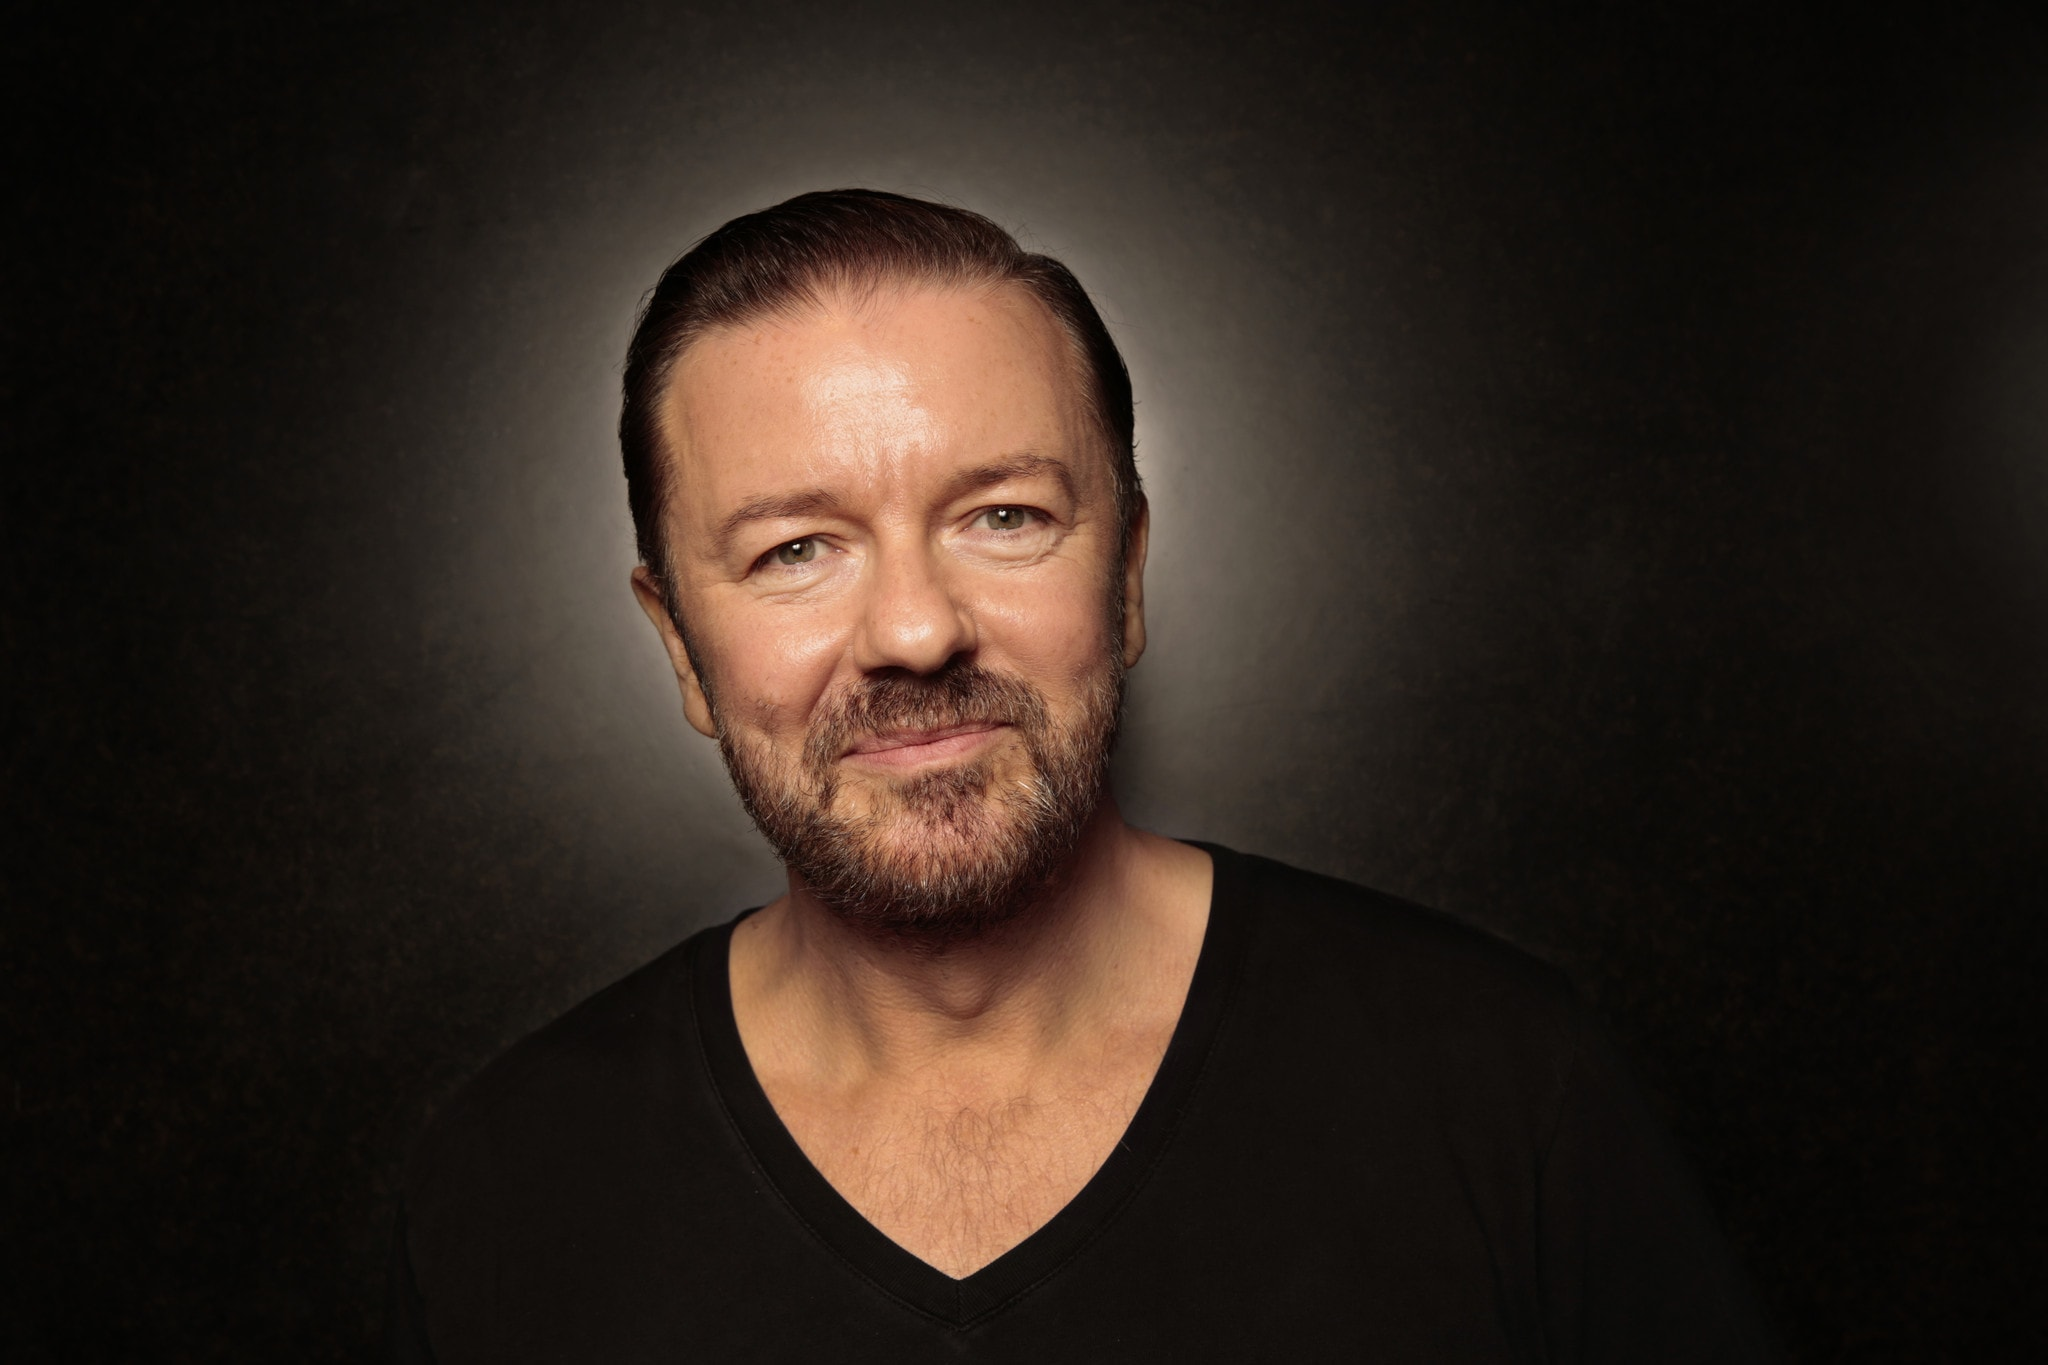 Ricky Gervais widescreen wallpapers